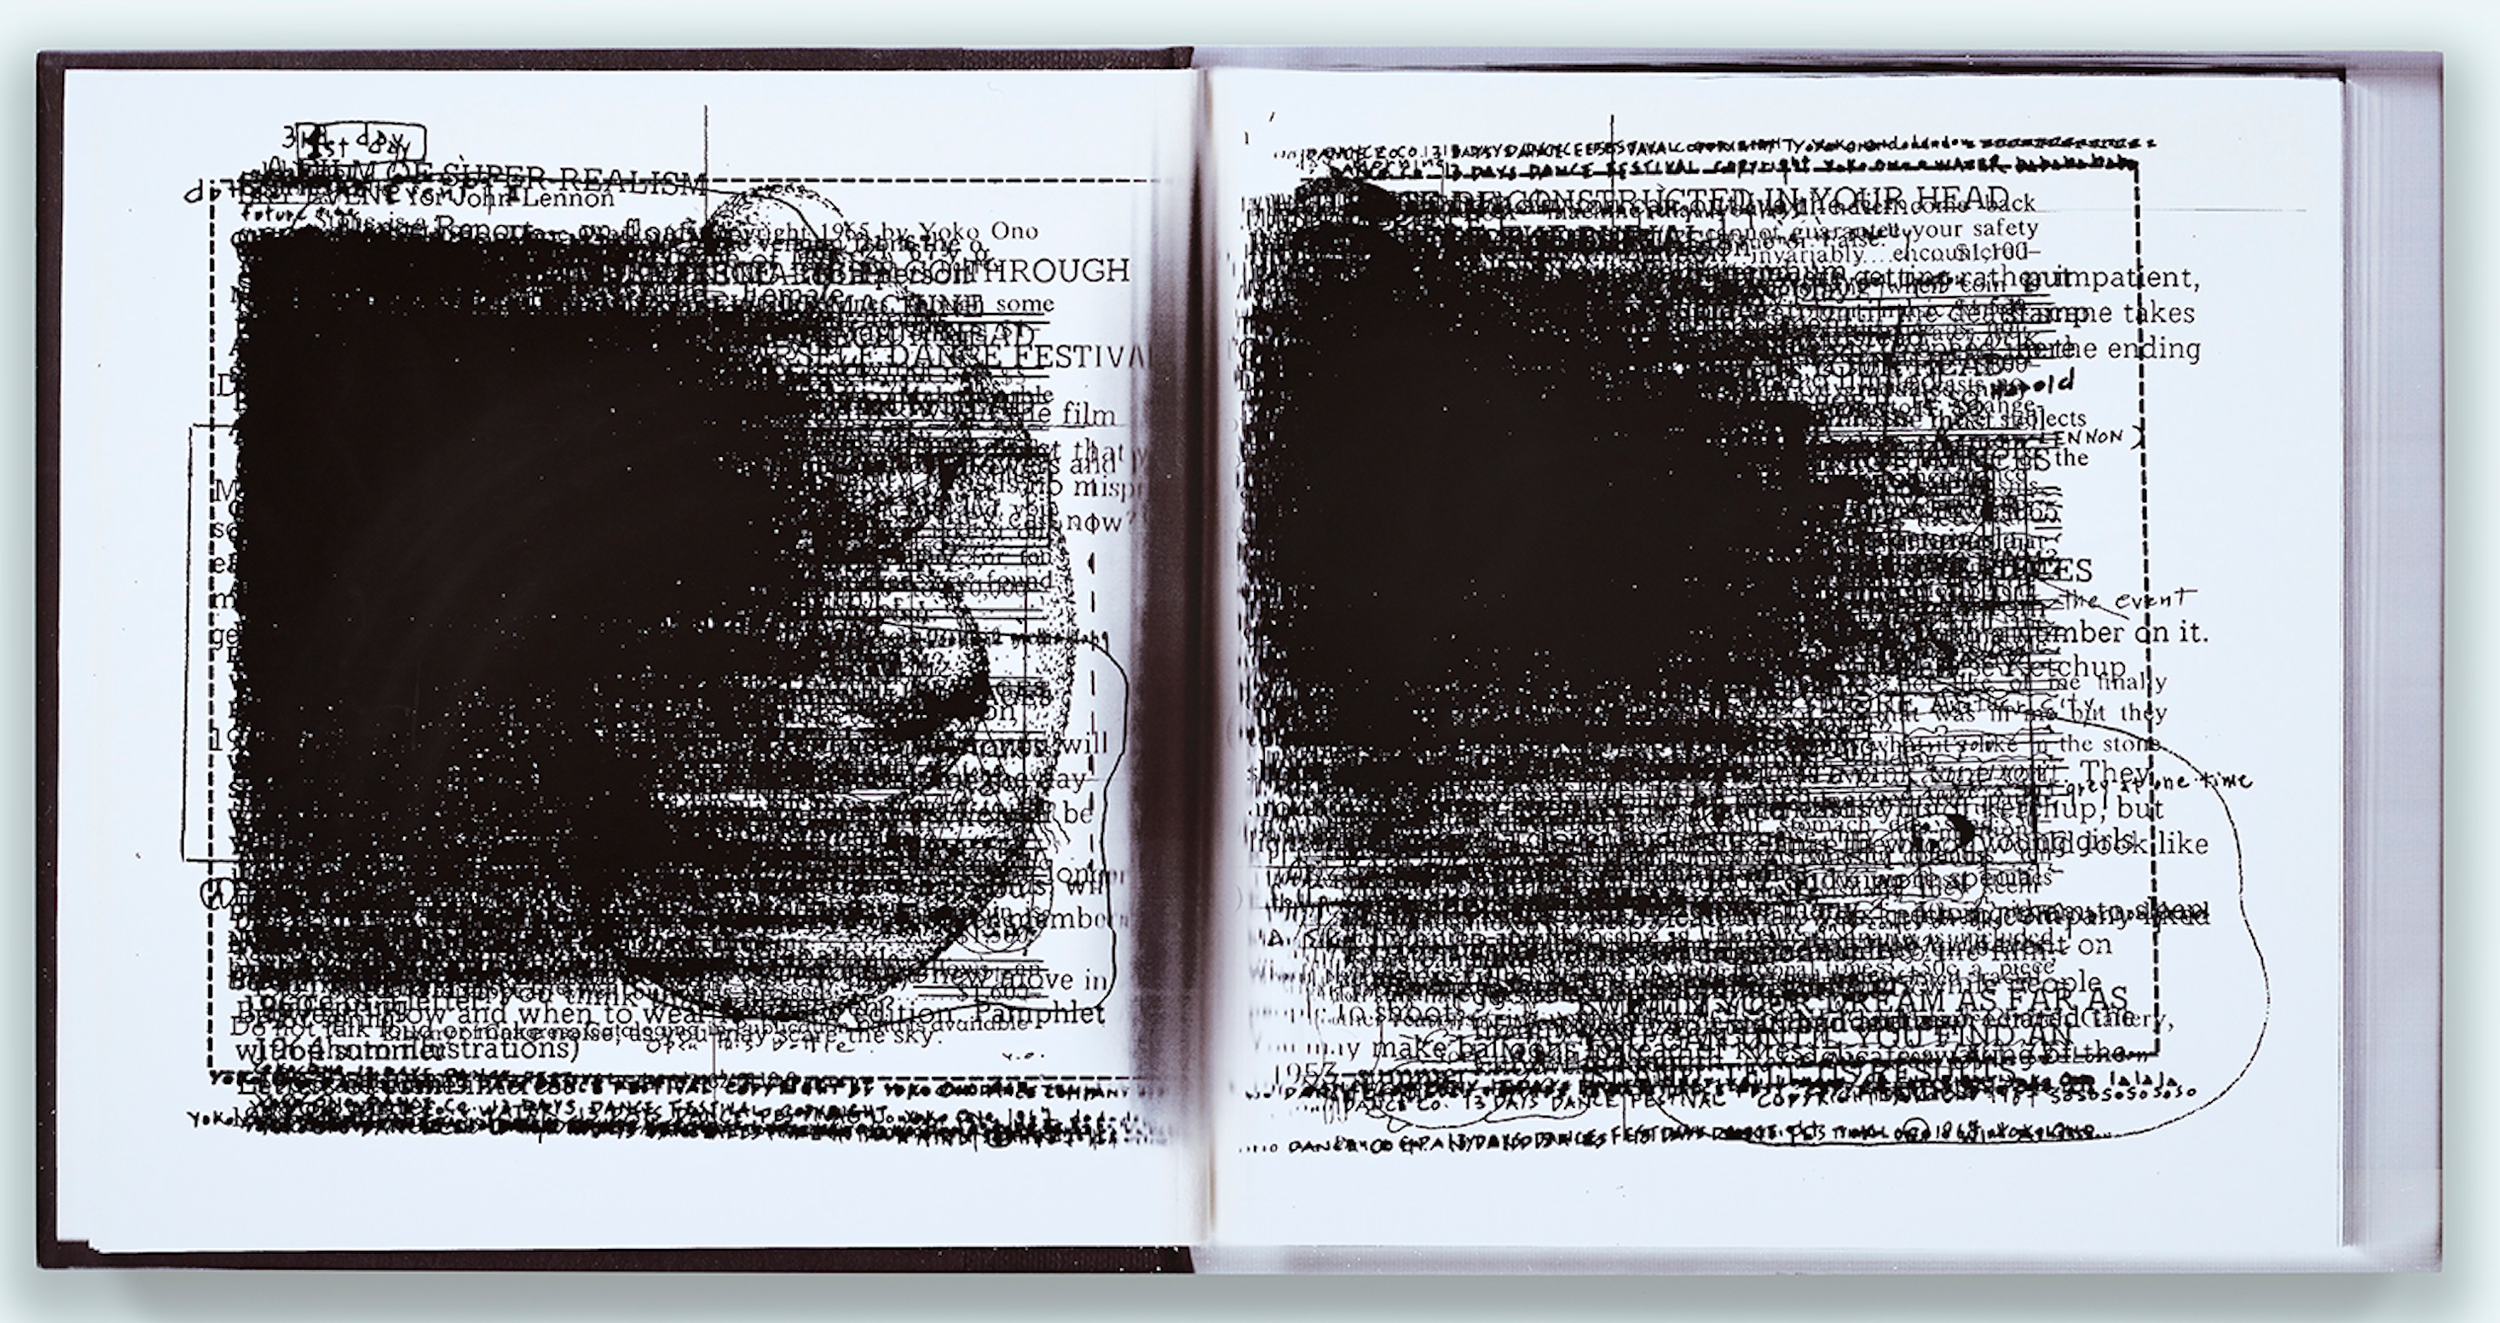 Facsimile Compression: Why Write?, Paul Auster    2014   28 x 39 inches   Archival pigment print on cotton paper, oak base   C009